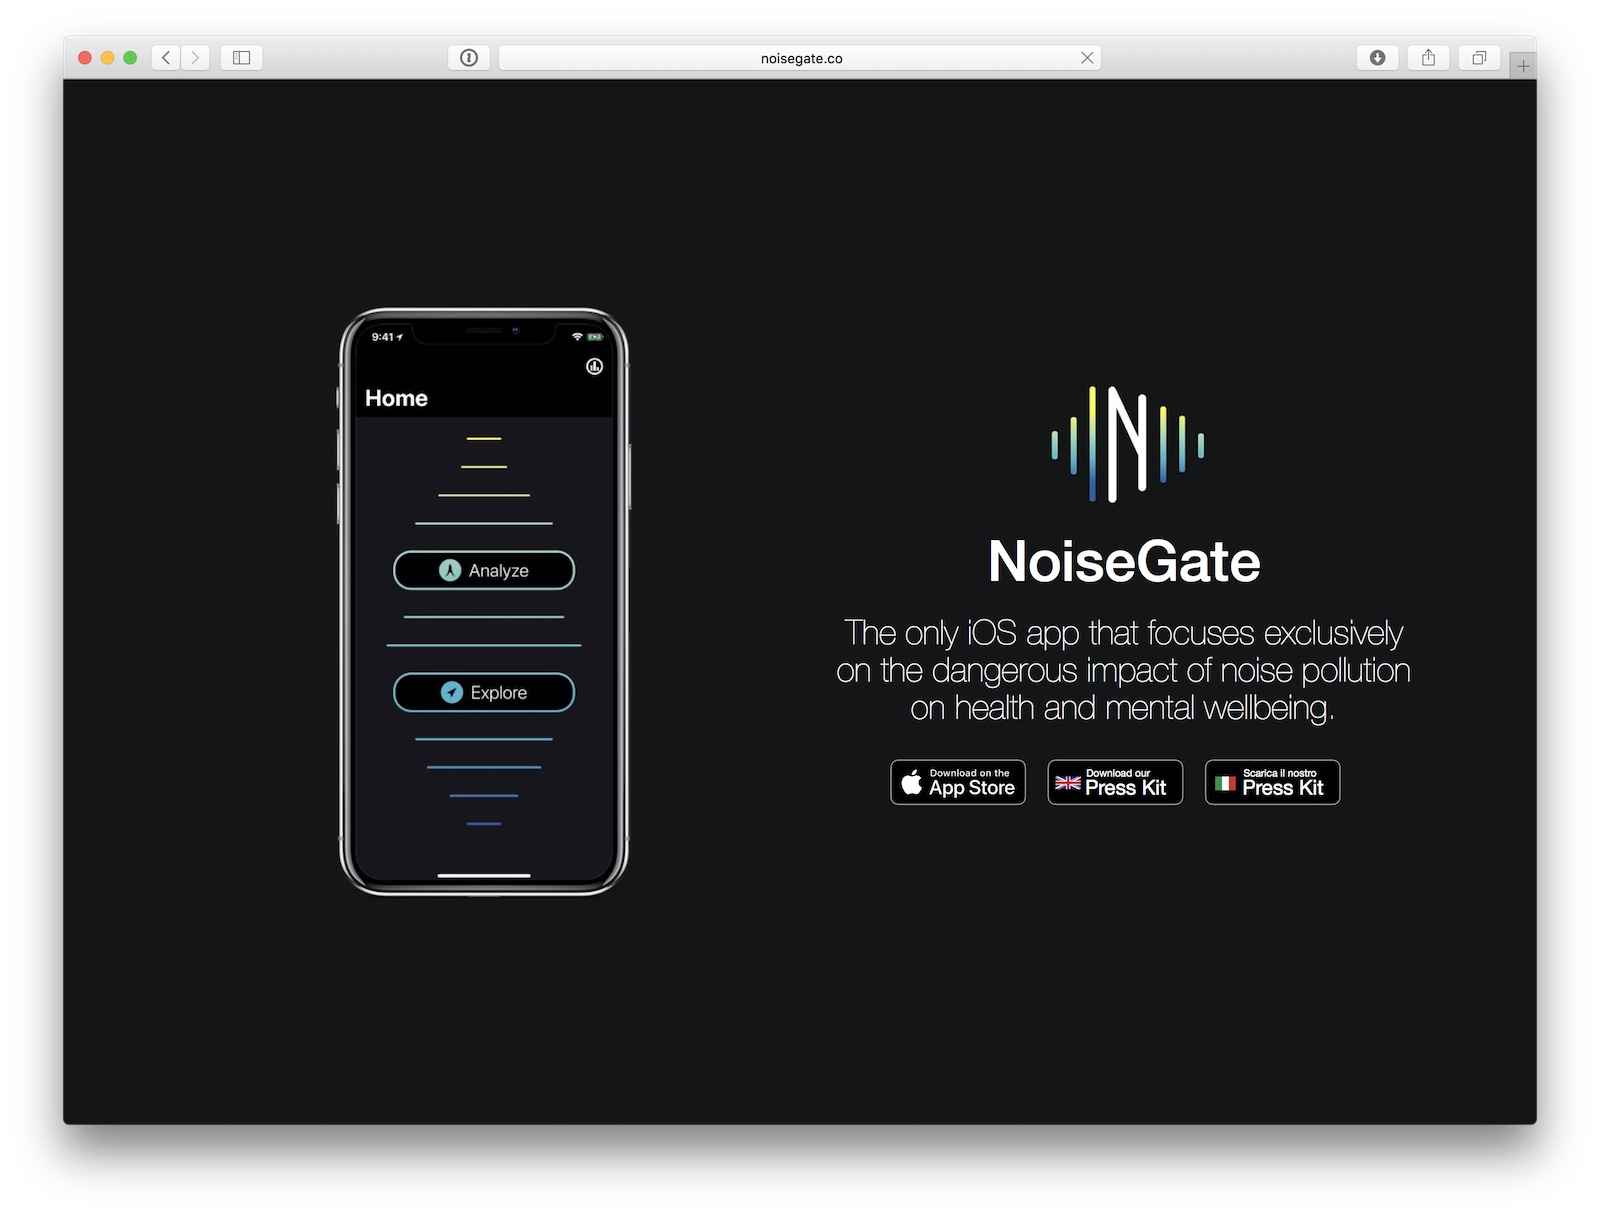 noisegate.co